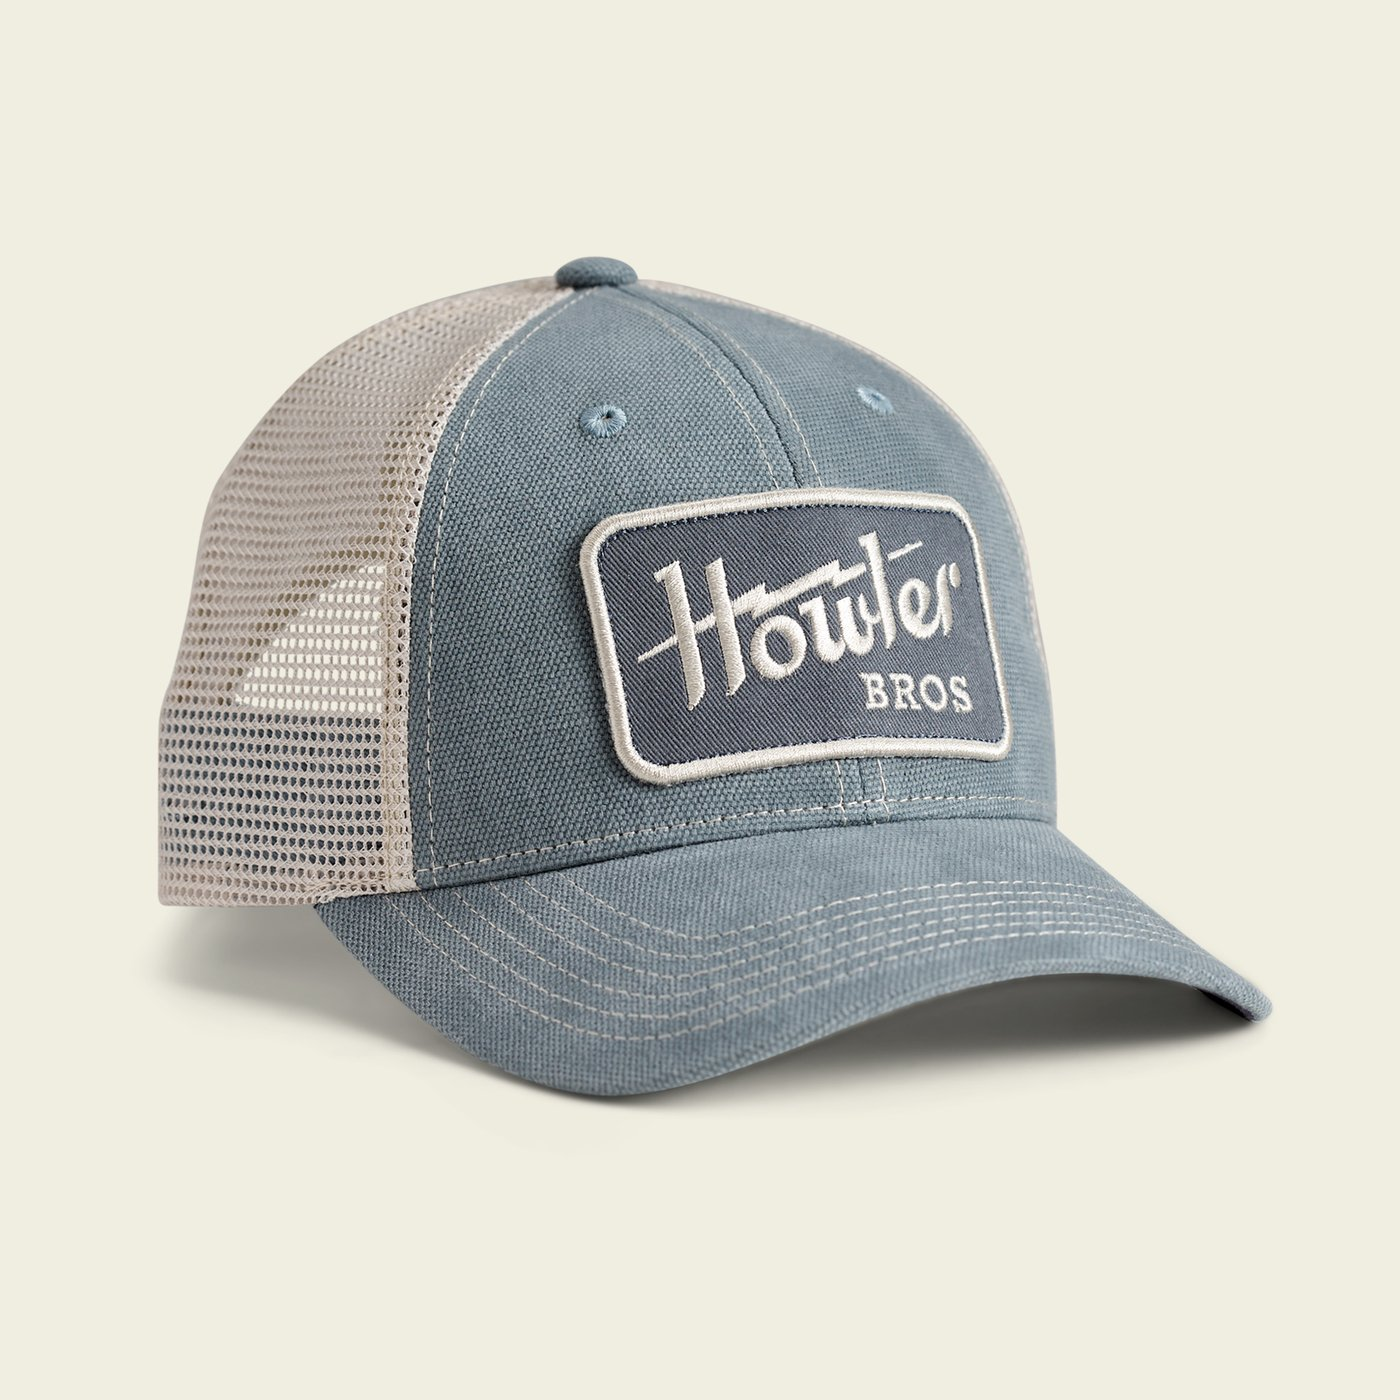 Howler Brothers Howler Electric Hat - Slate Blue / Stone